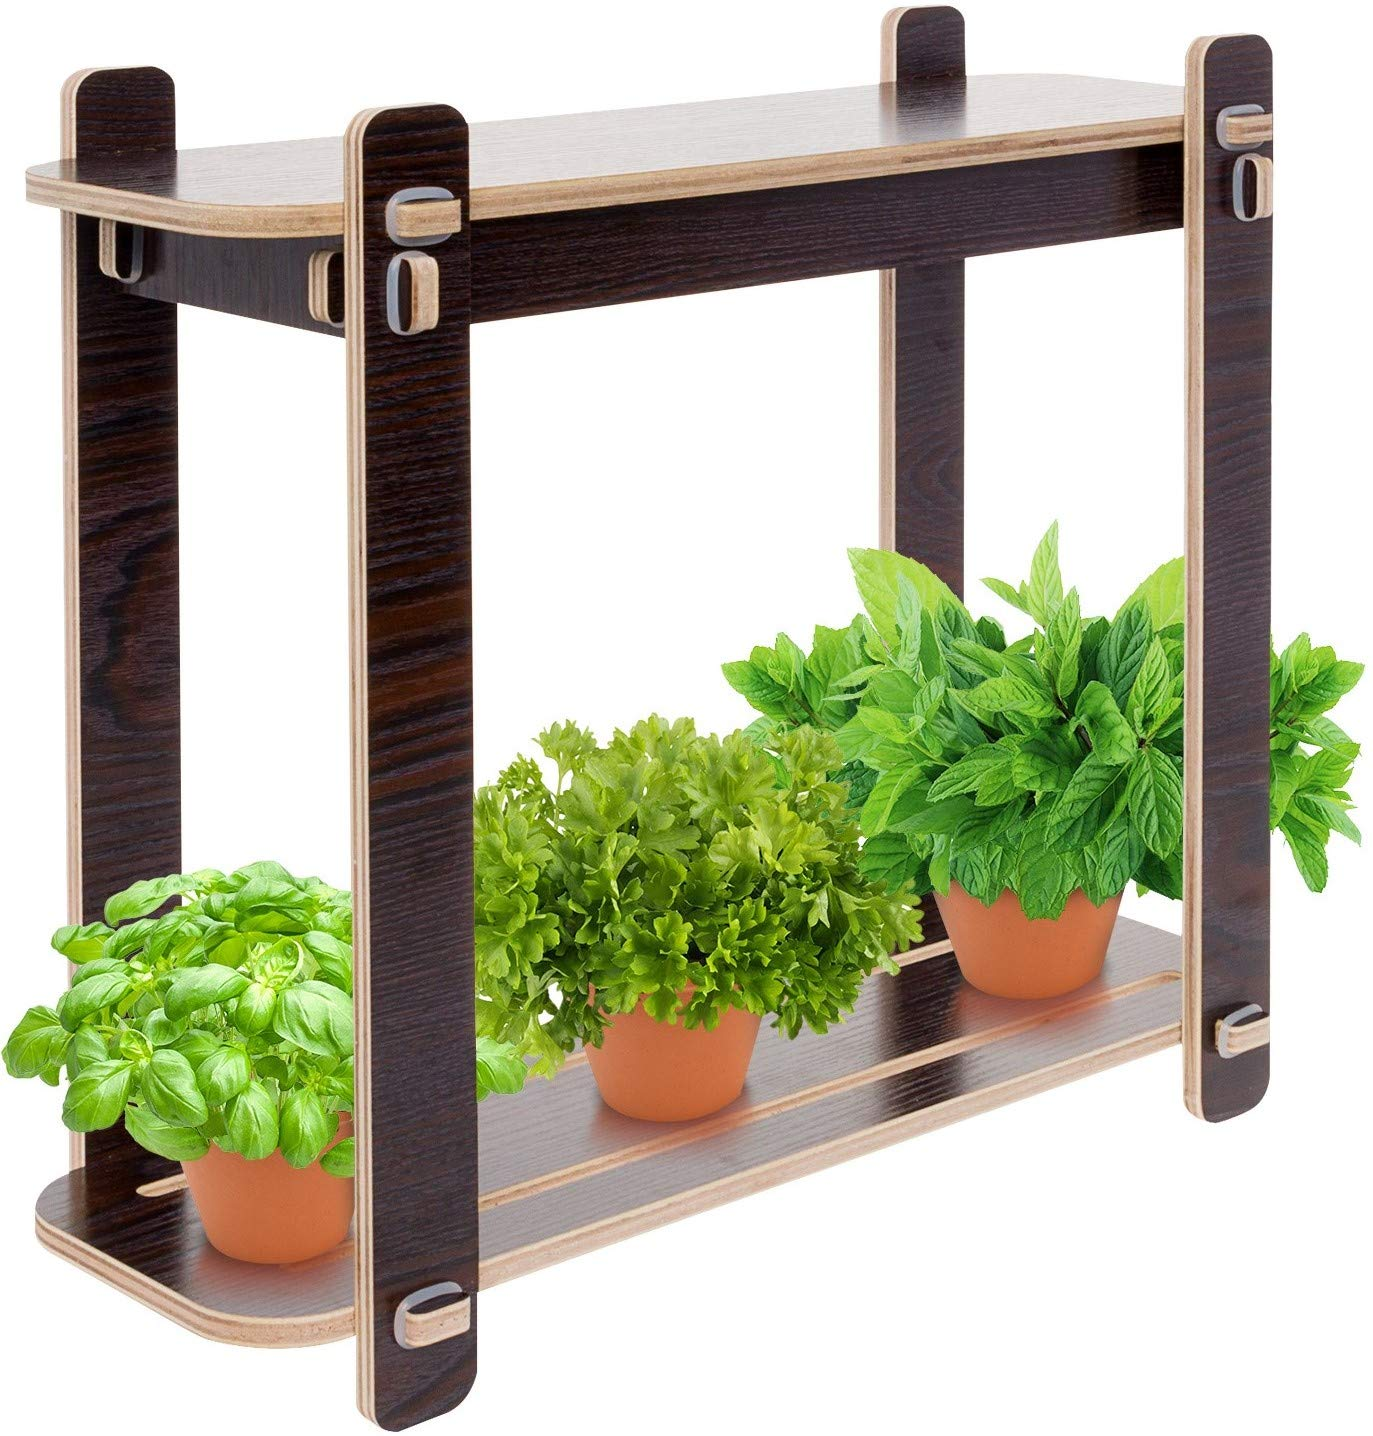 Mindful Design Wood Finish LED Indoor Garden - Grow Herbs, Succulents,Vegetables by Mindful Design